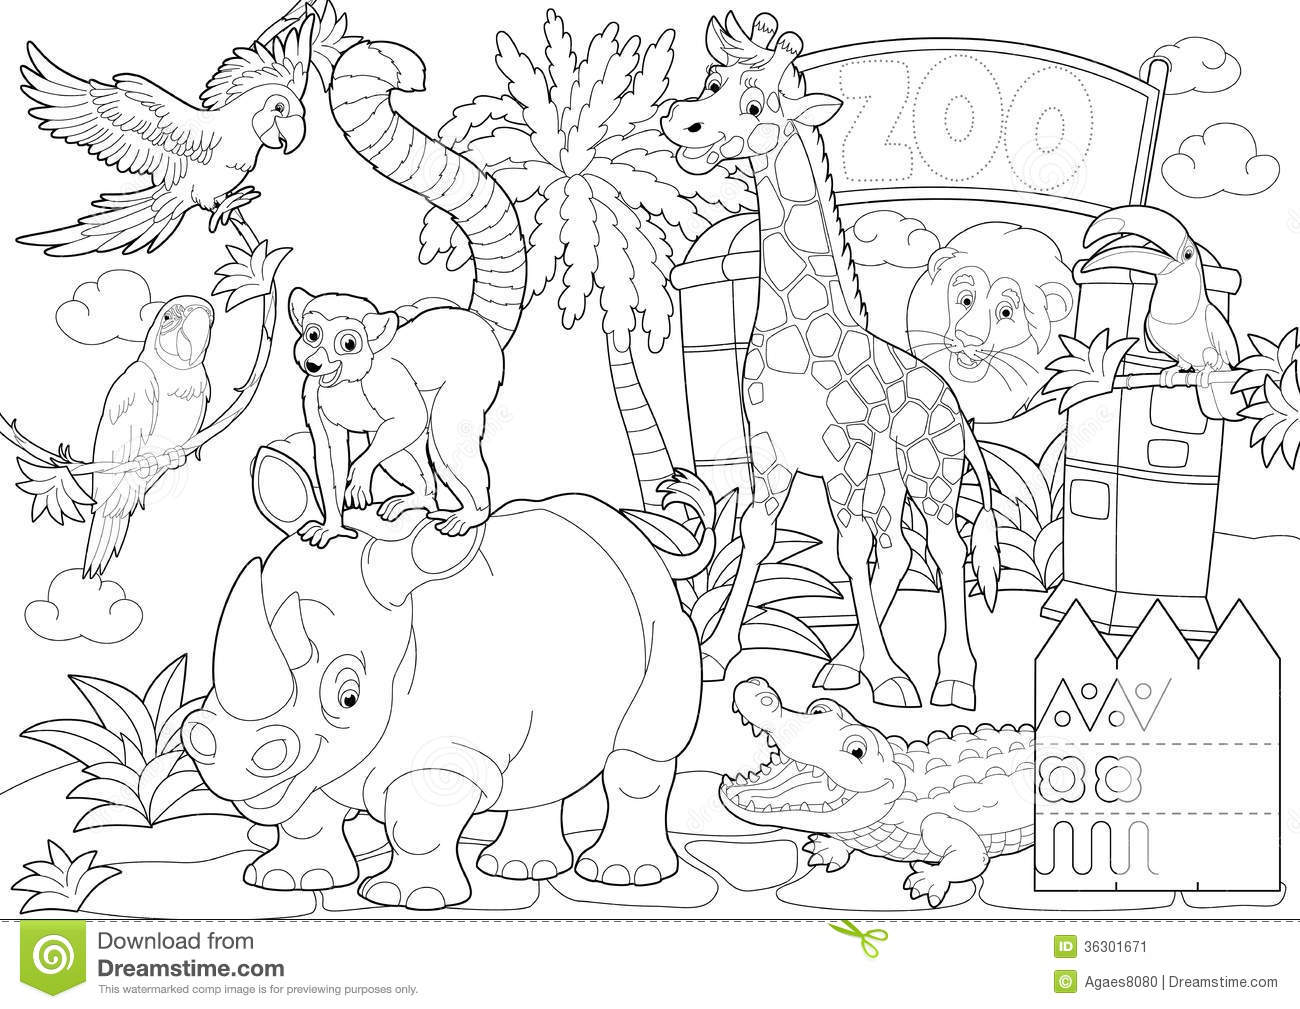 Coloring Page - The Zoo - Illustration For The Children Stock Illustration - Illustration of ...